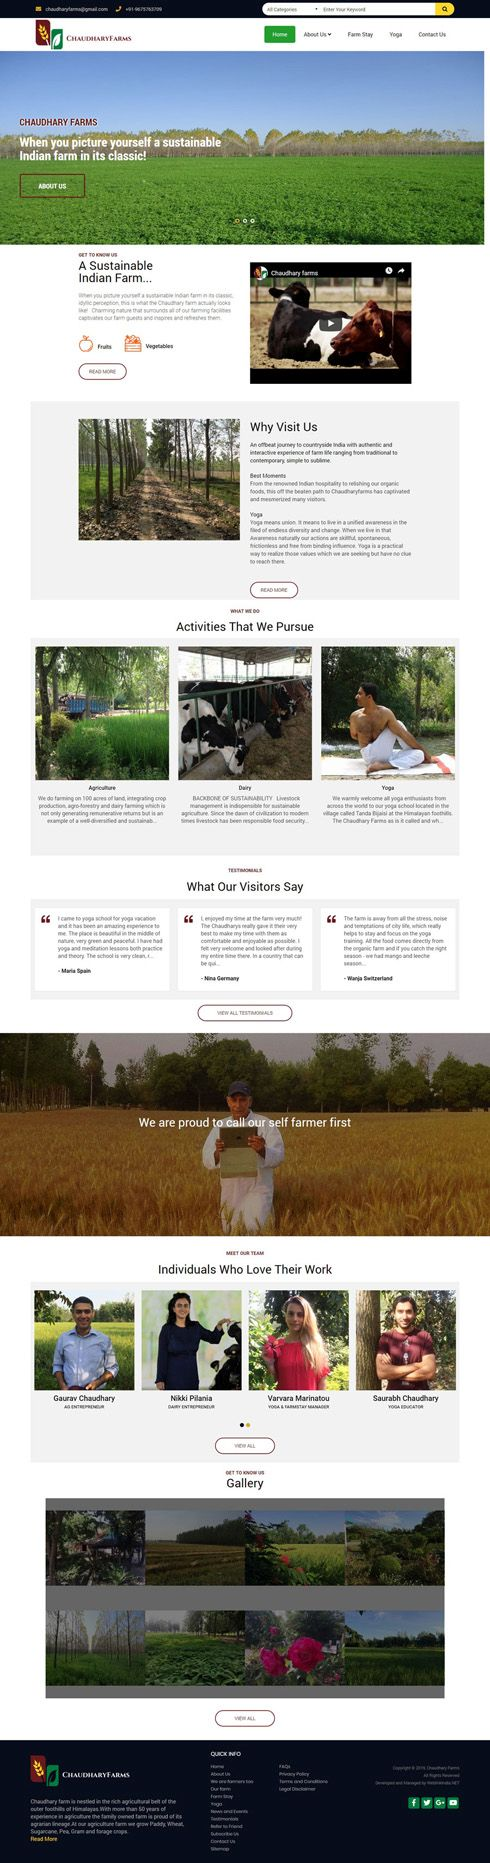 Chaudhary Farms India Web Design